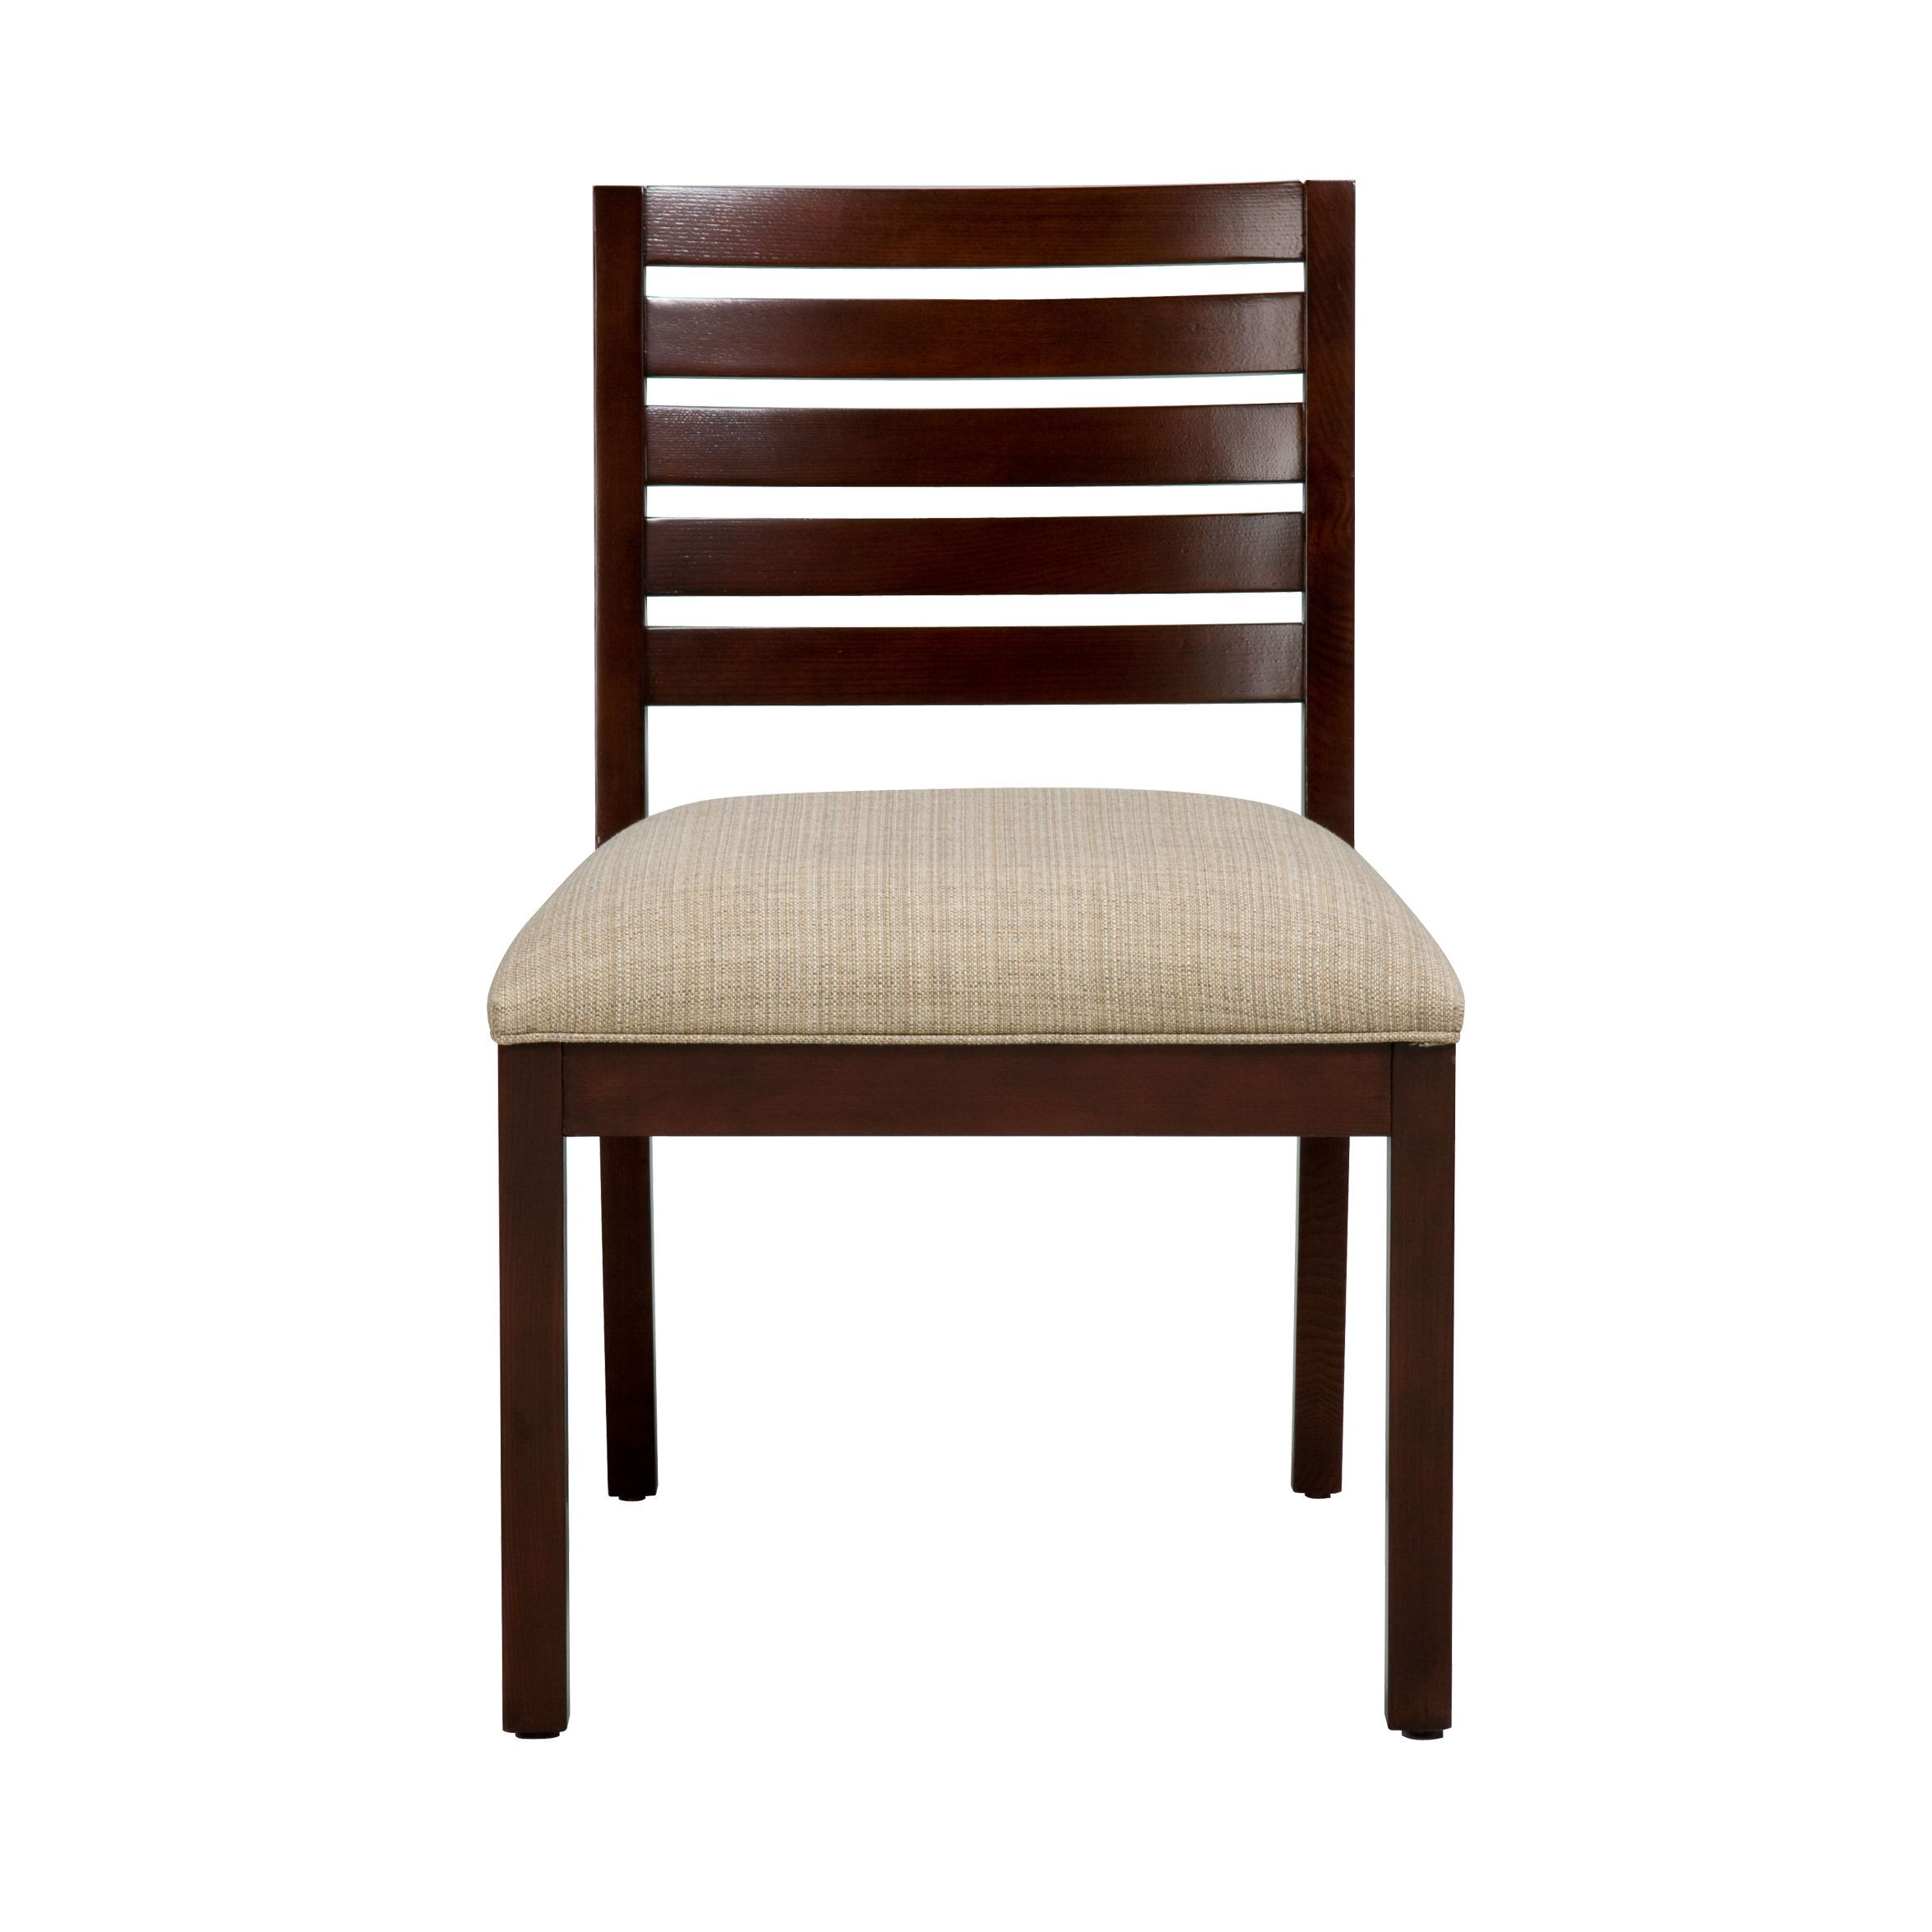 Modern Side Chairs For Living Room Kyla Side Chair Ethan Allen Us Furniture Pinterest Chairs